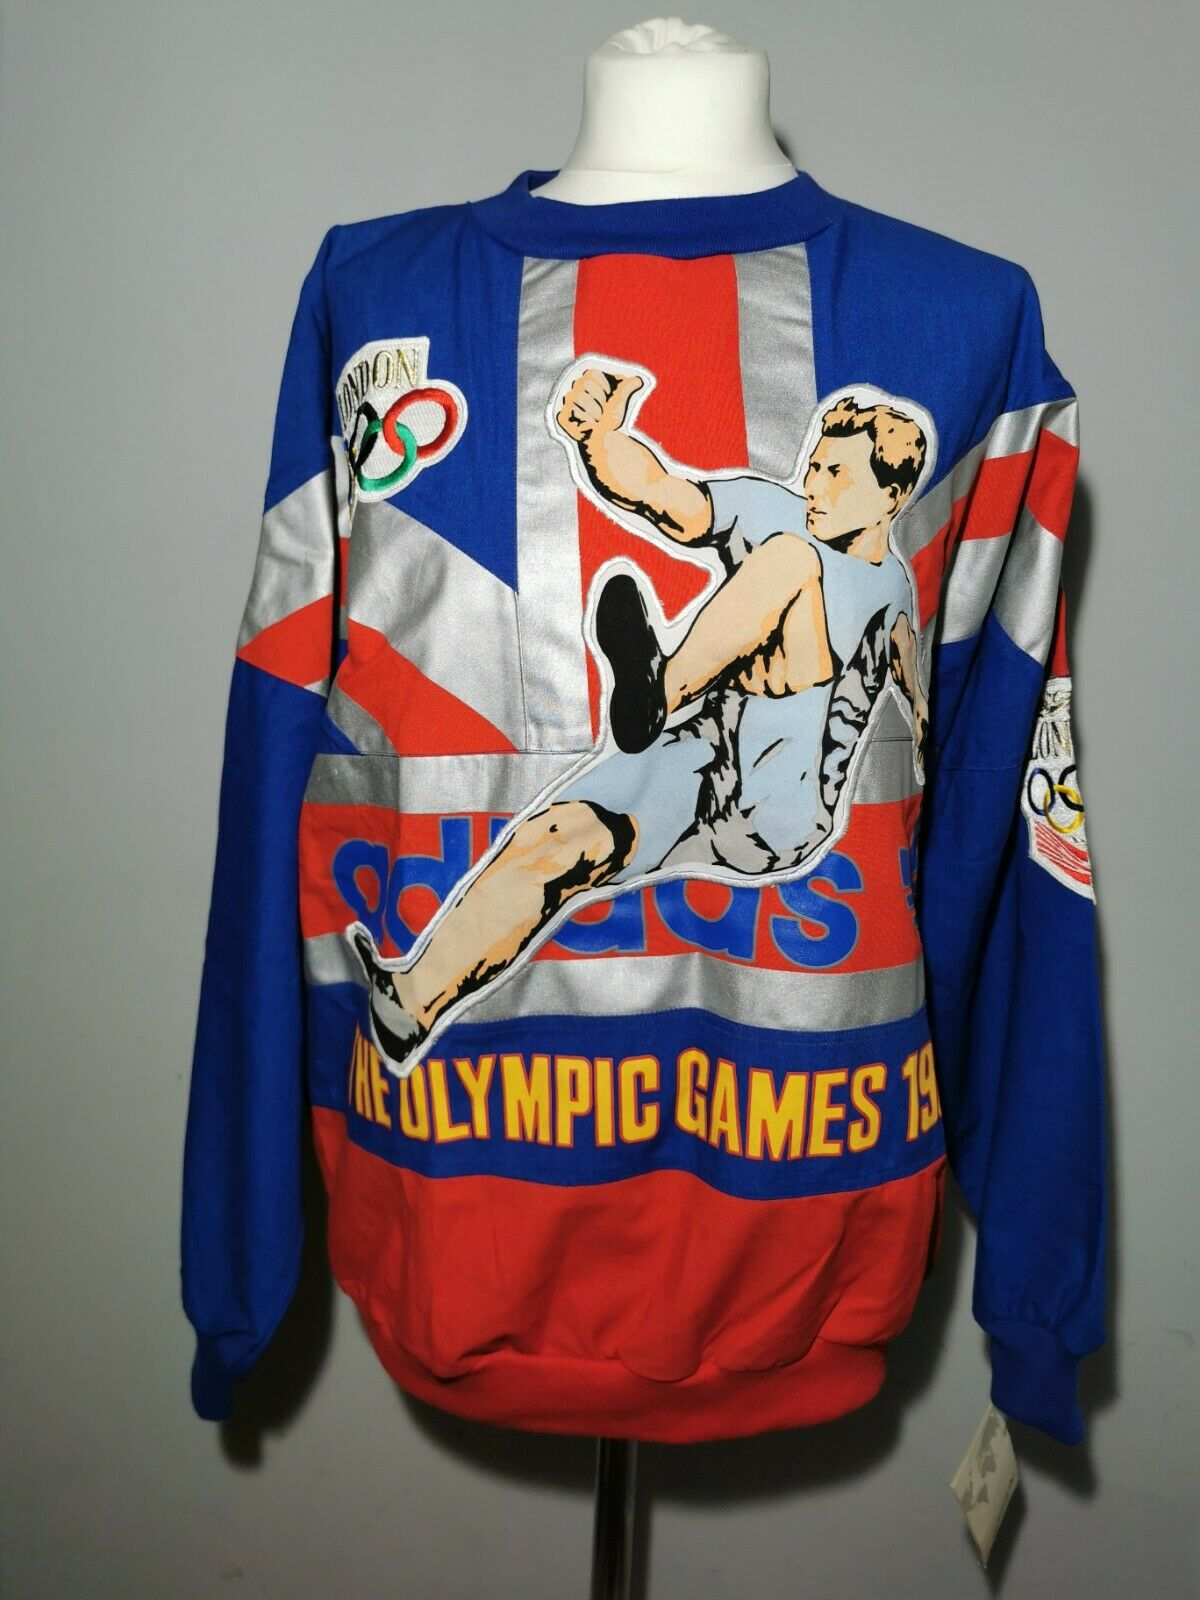 Adidas London Olympic Games 1908 / 1948 - Ultra Rare 80s UNWORN with Tags